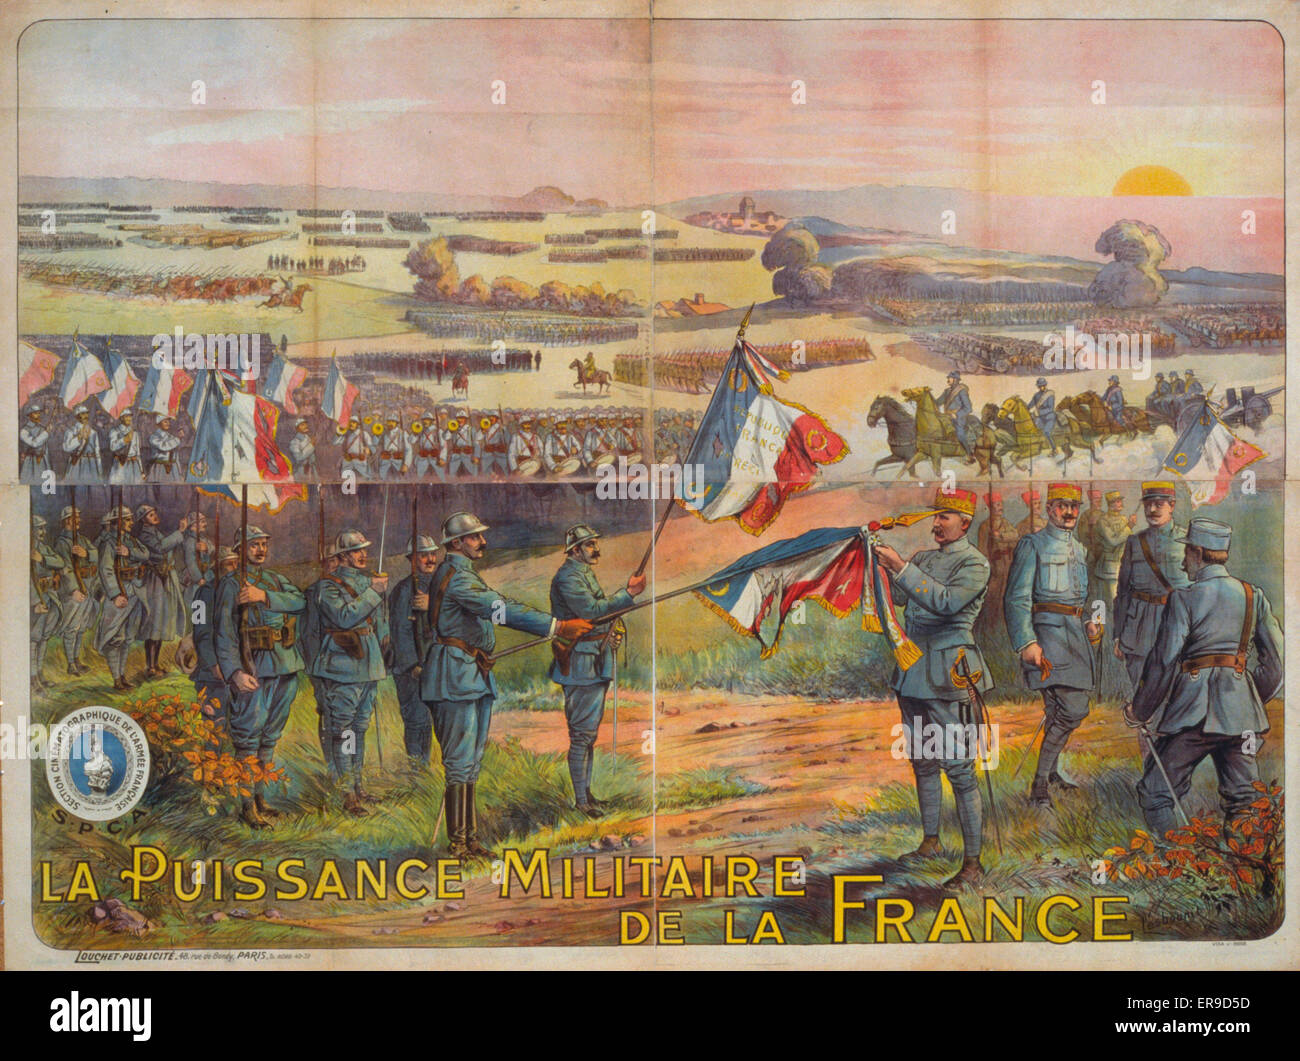 La puissance militaire de la France. French troops (infantrymen, cavalry, etc.) gathering on a field. Field Marshal - Stock Image